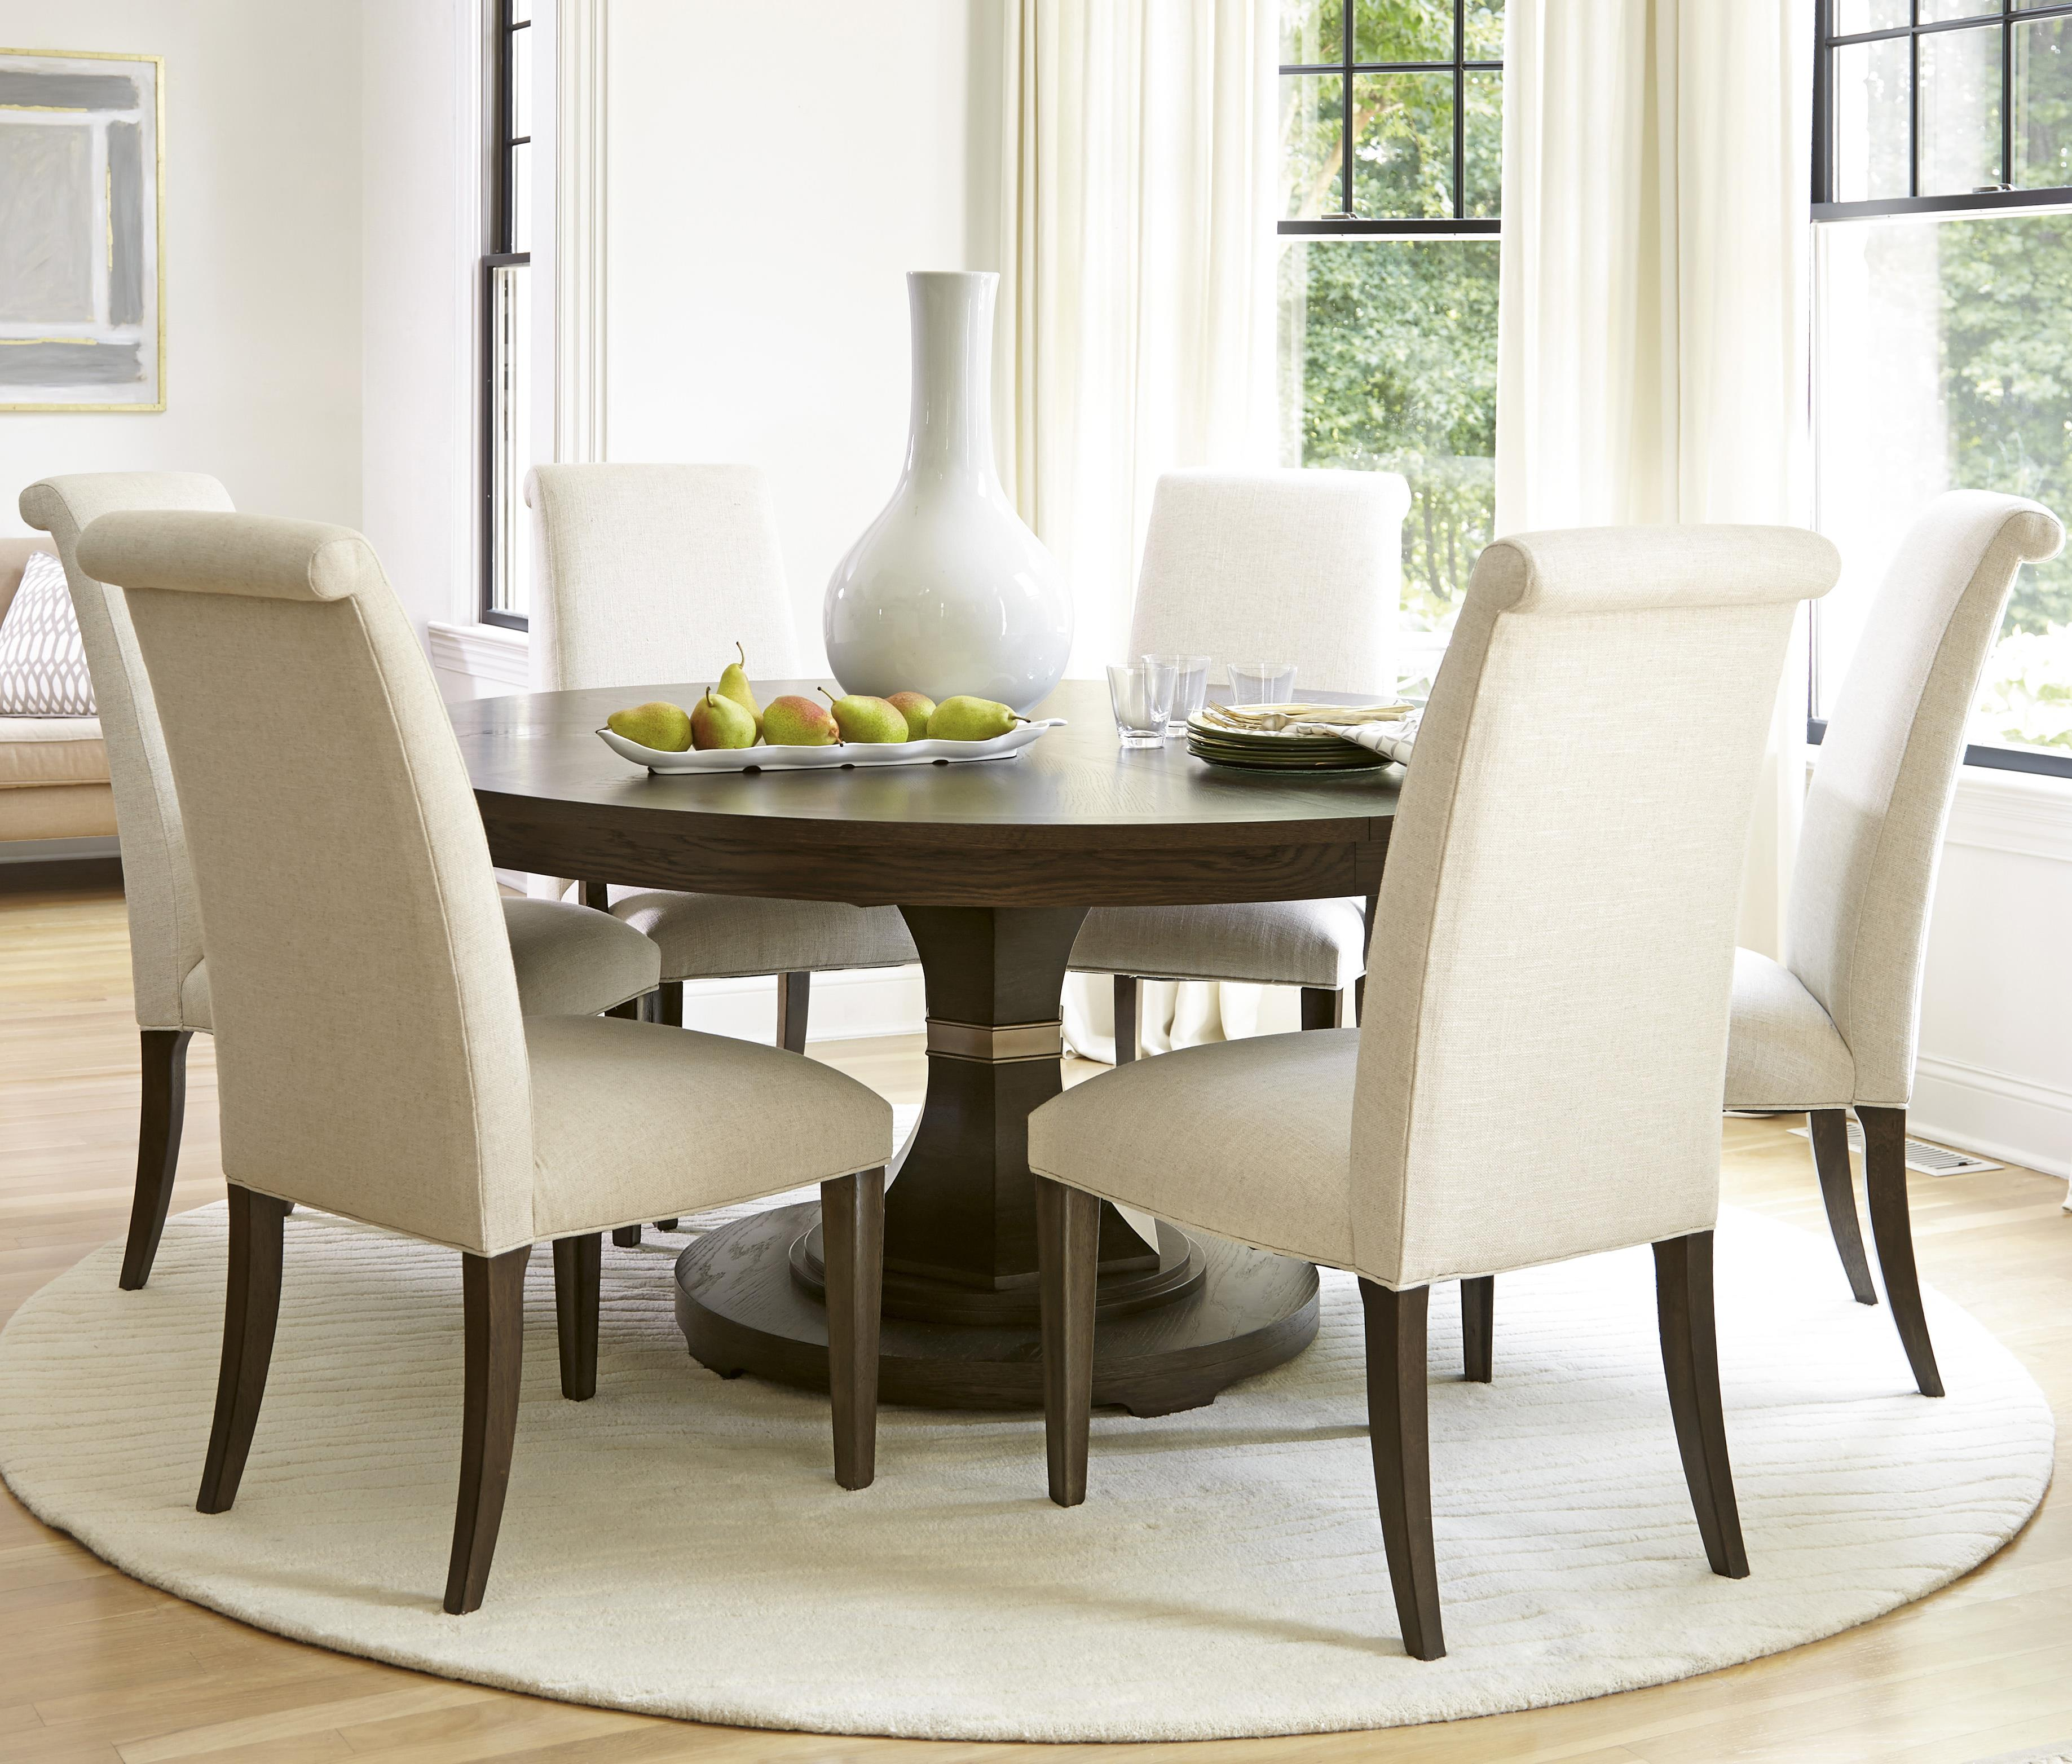 Universal California - Hollywood Hills 7 Piece Dining Set - Item Number: 475657+6x638-RTA